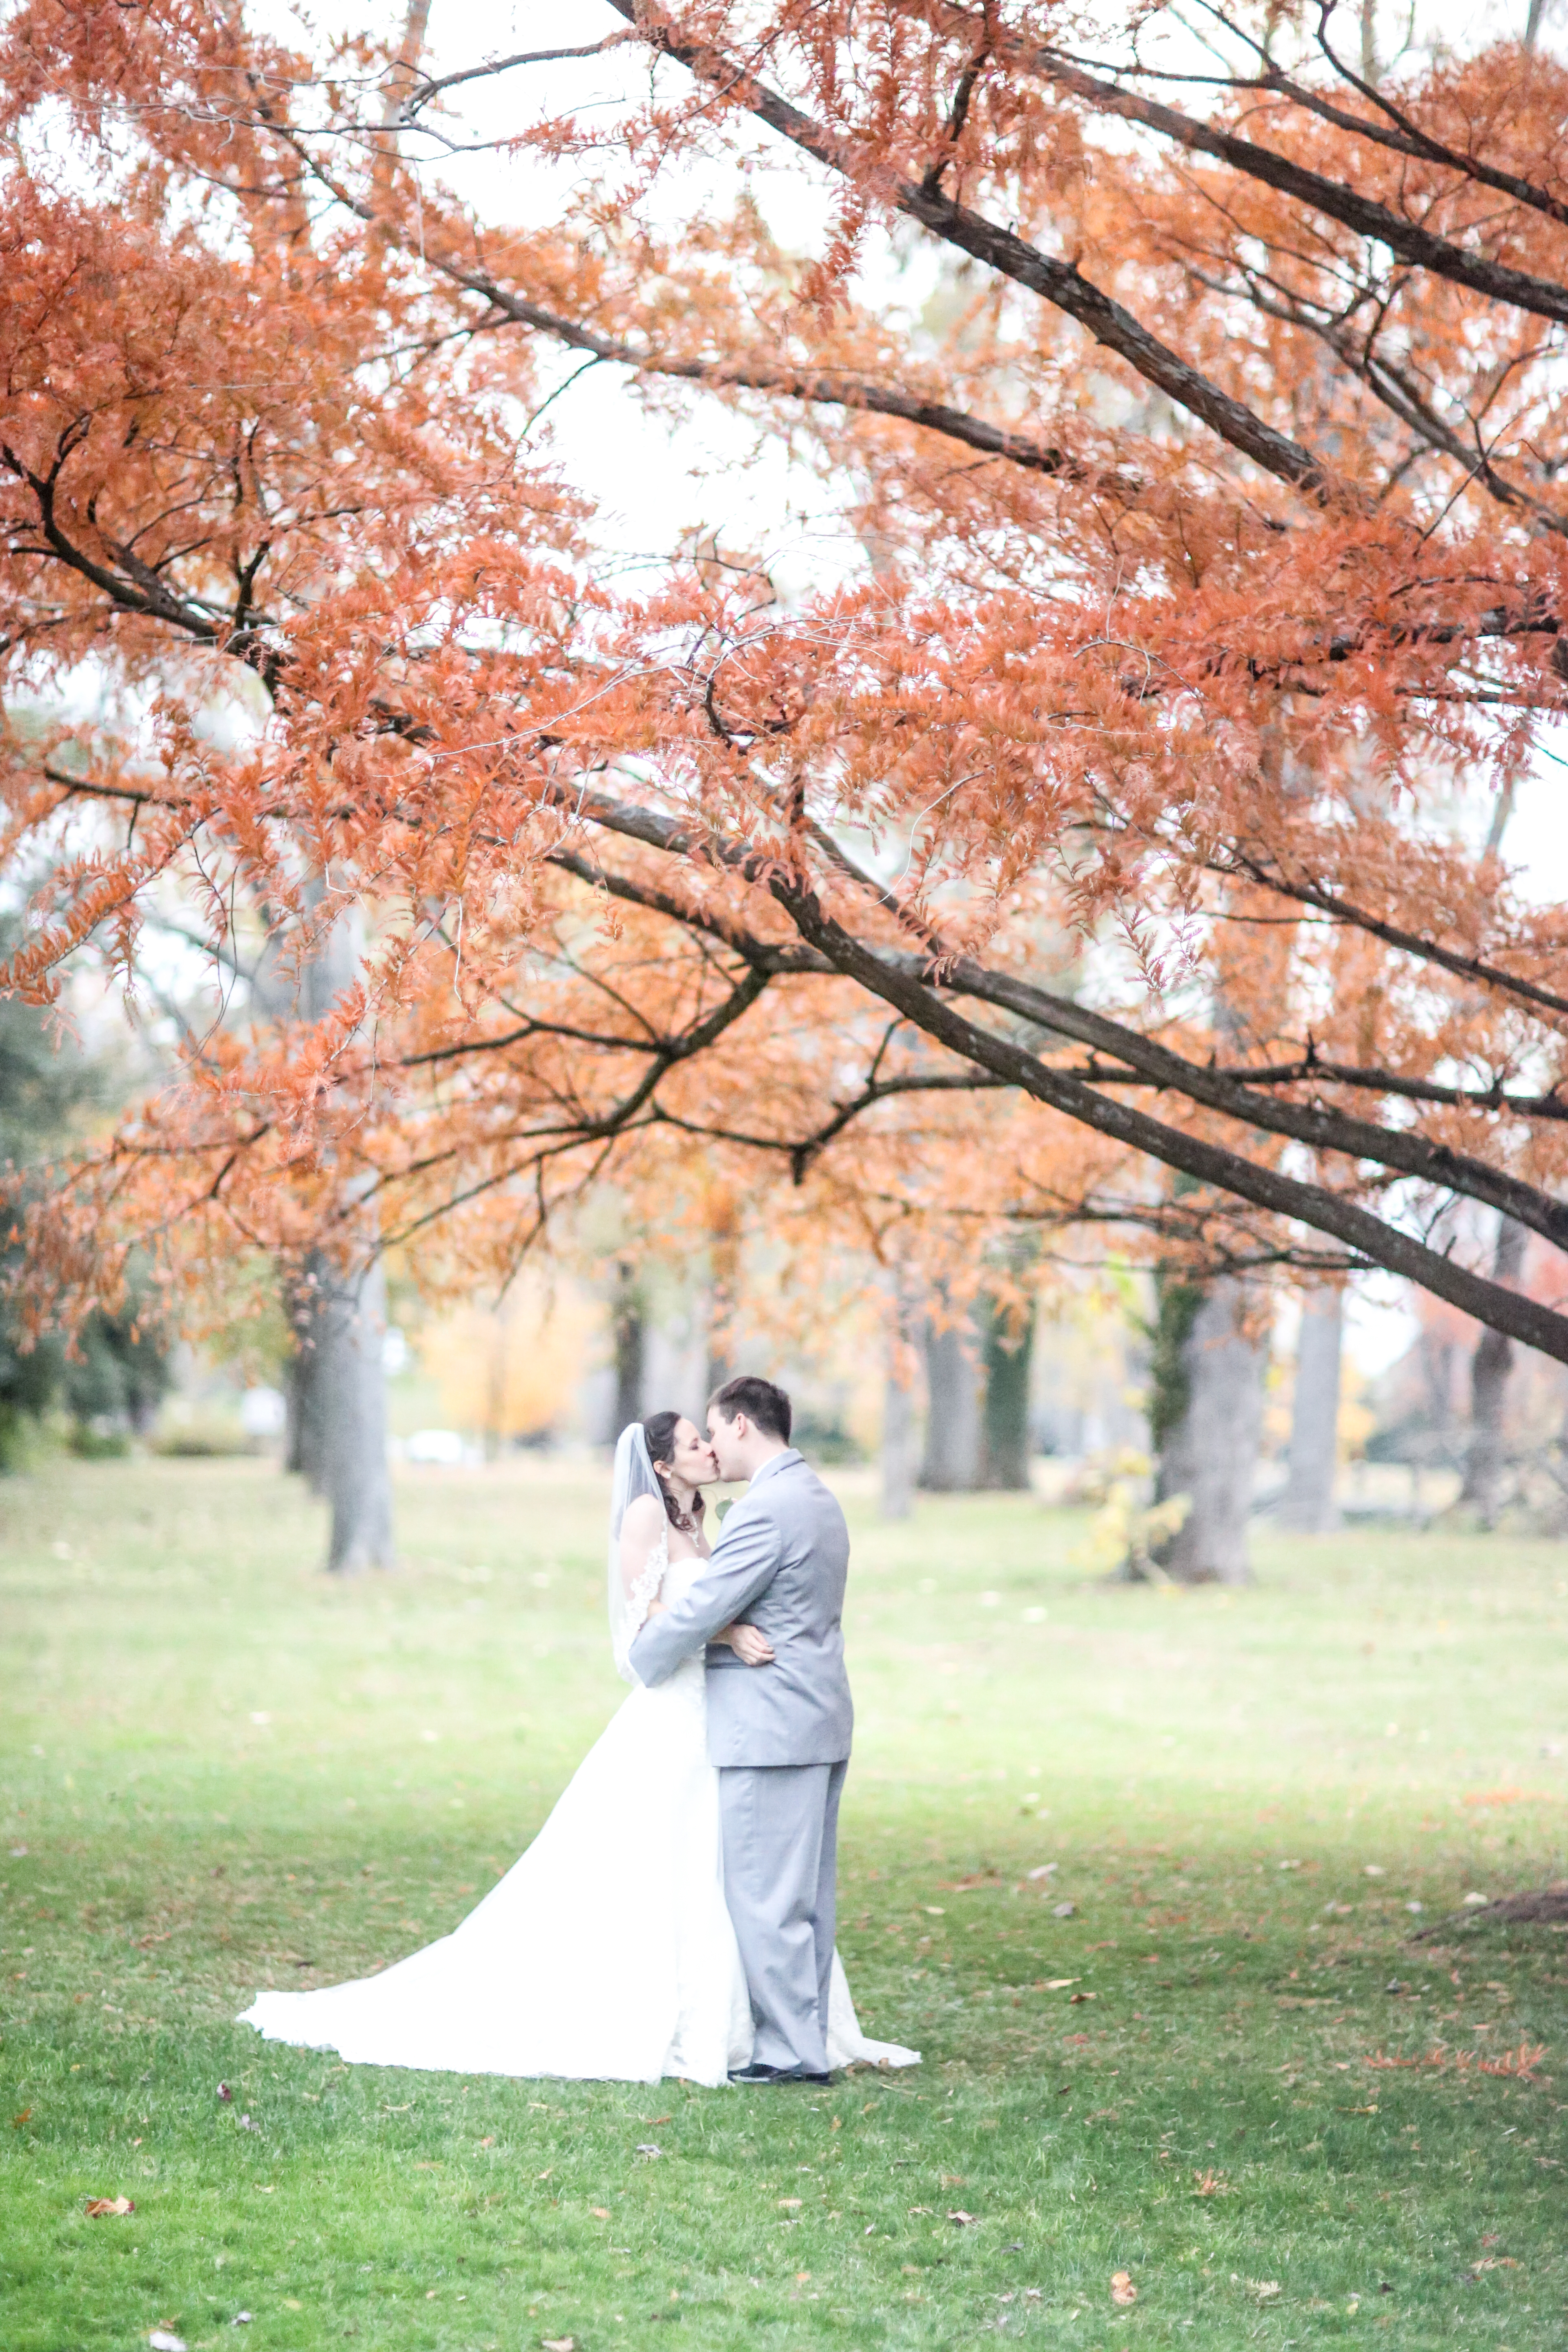 carillon-wedding-richmond-virginia-wedding-heather-michelle-photography-1-of-1-52